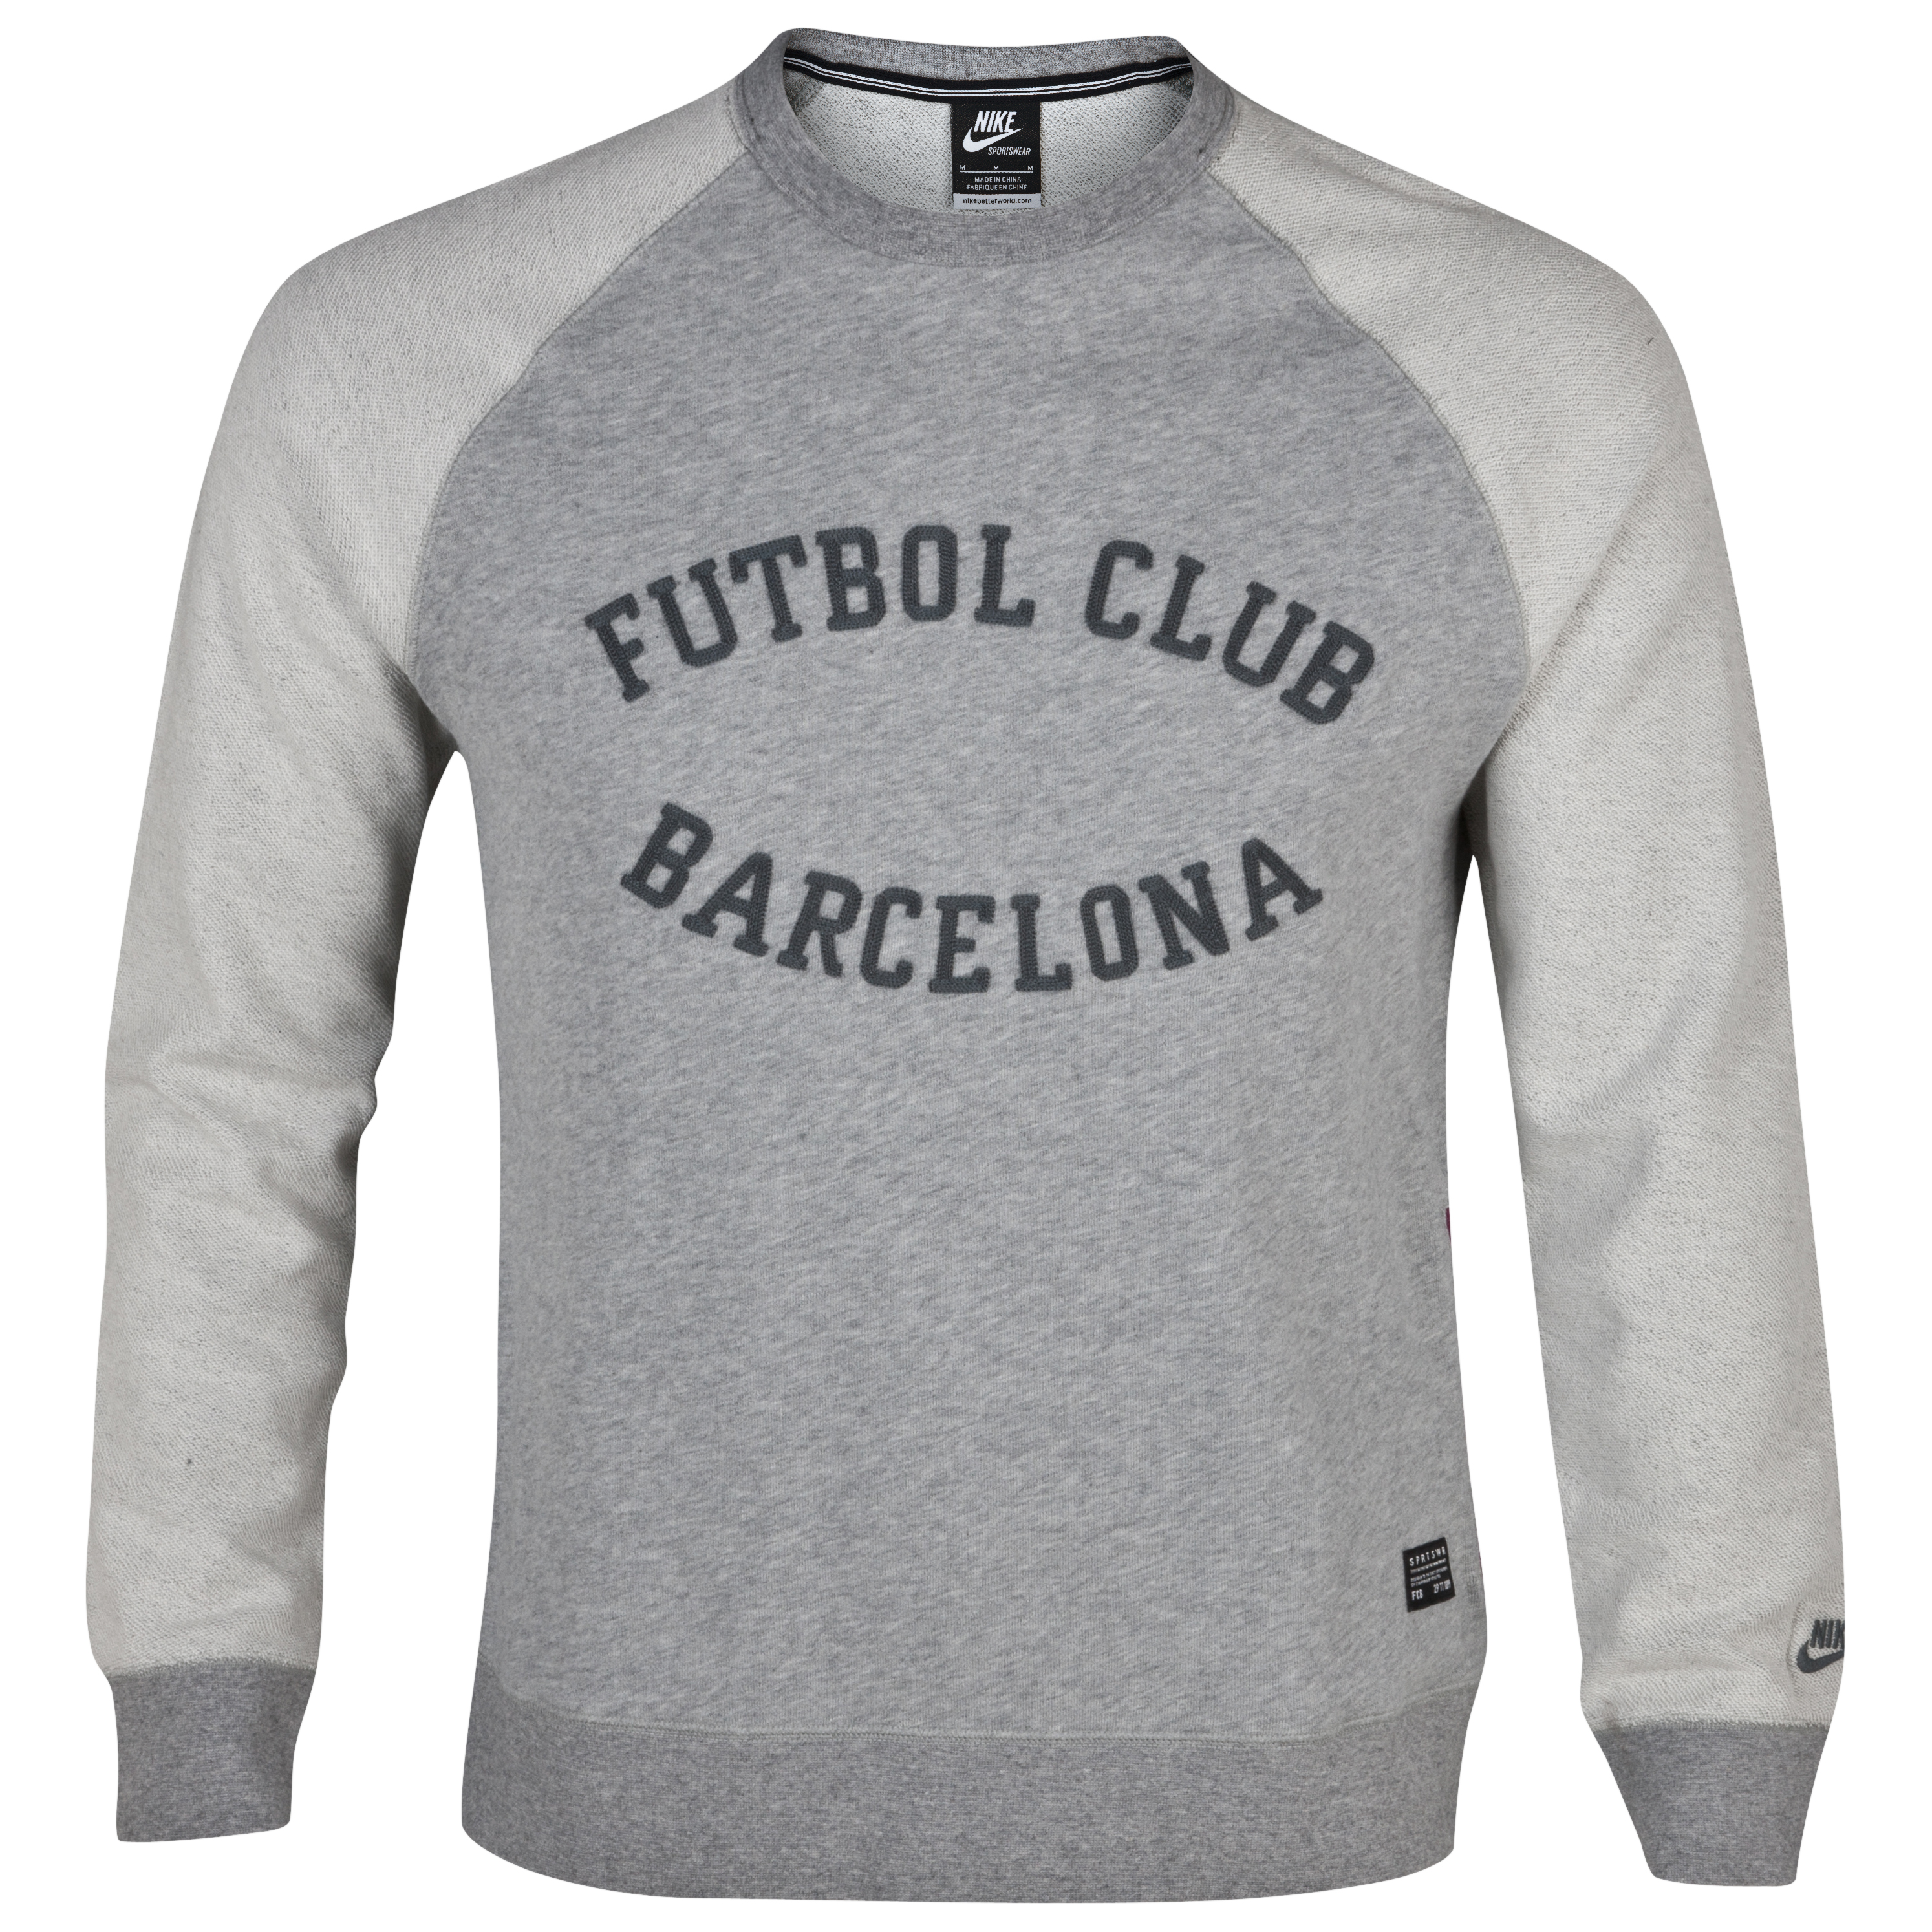 Barcelona NSW Crew Neck Sweatshirt - Dark Grey Heather